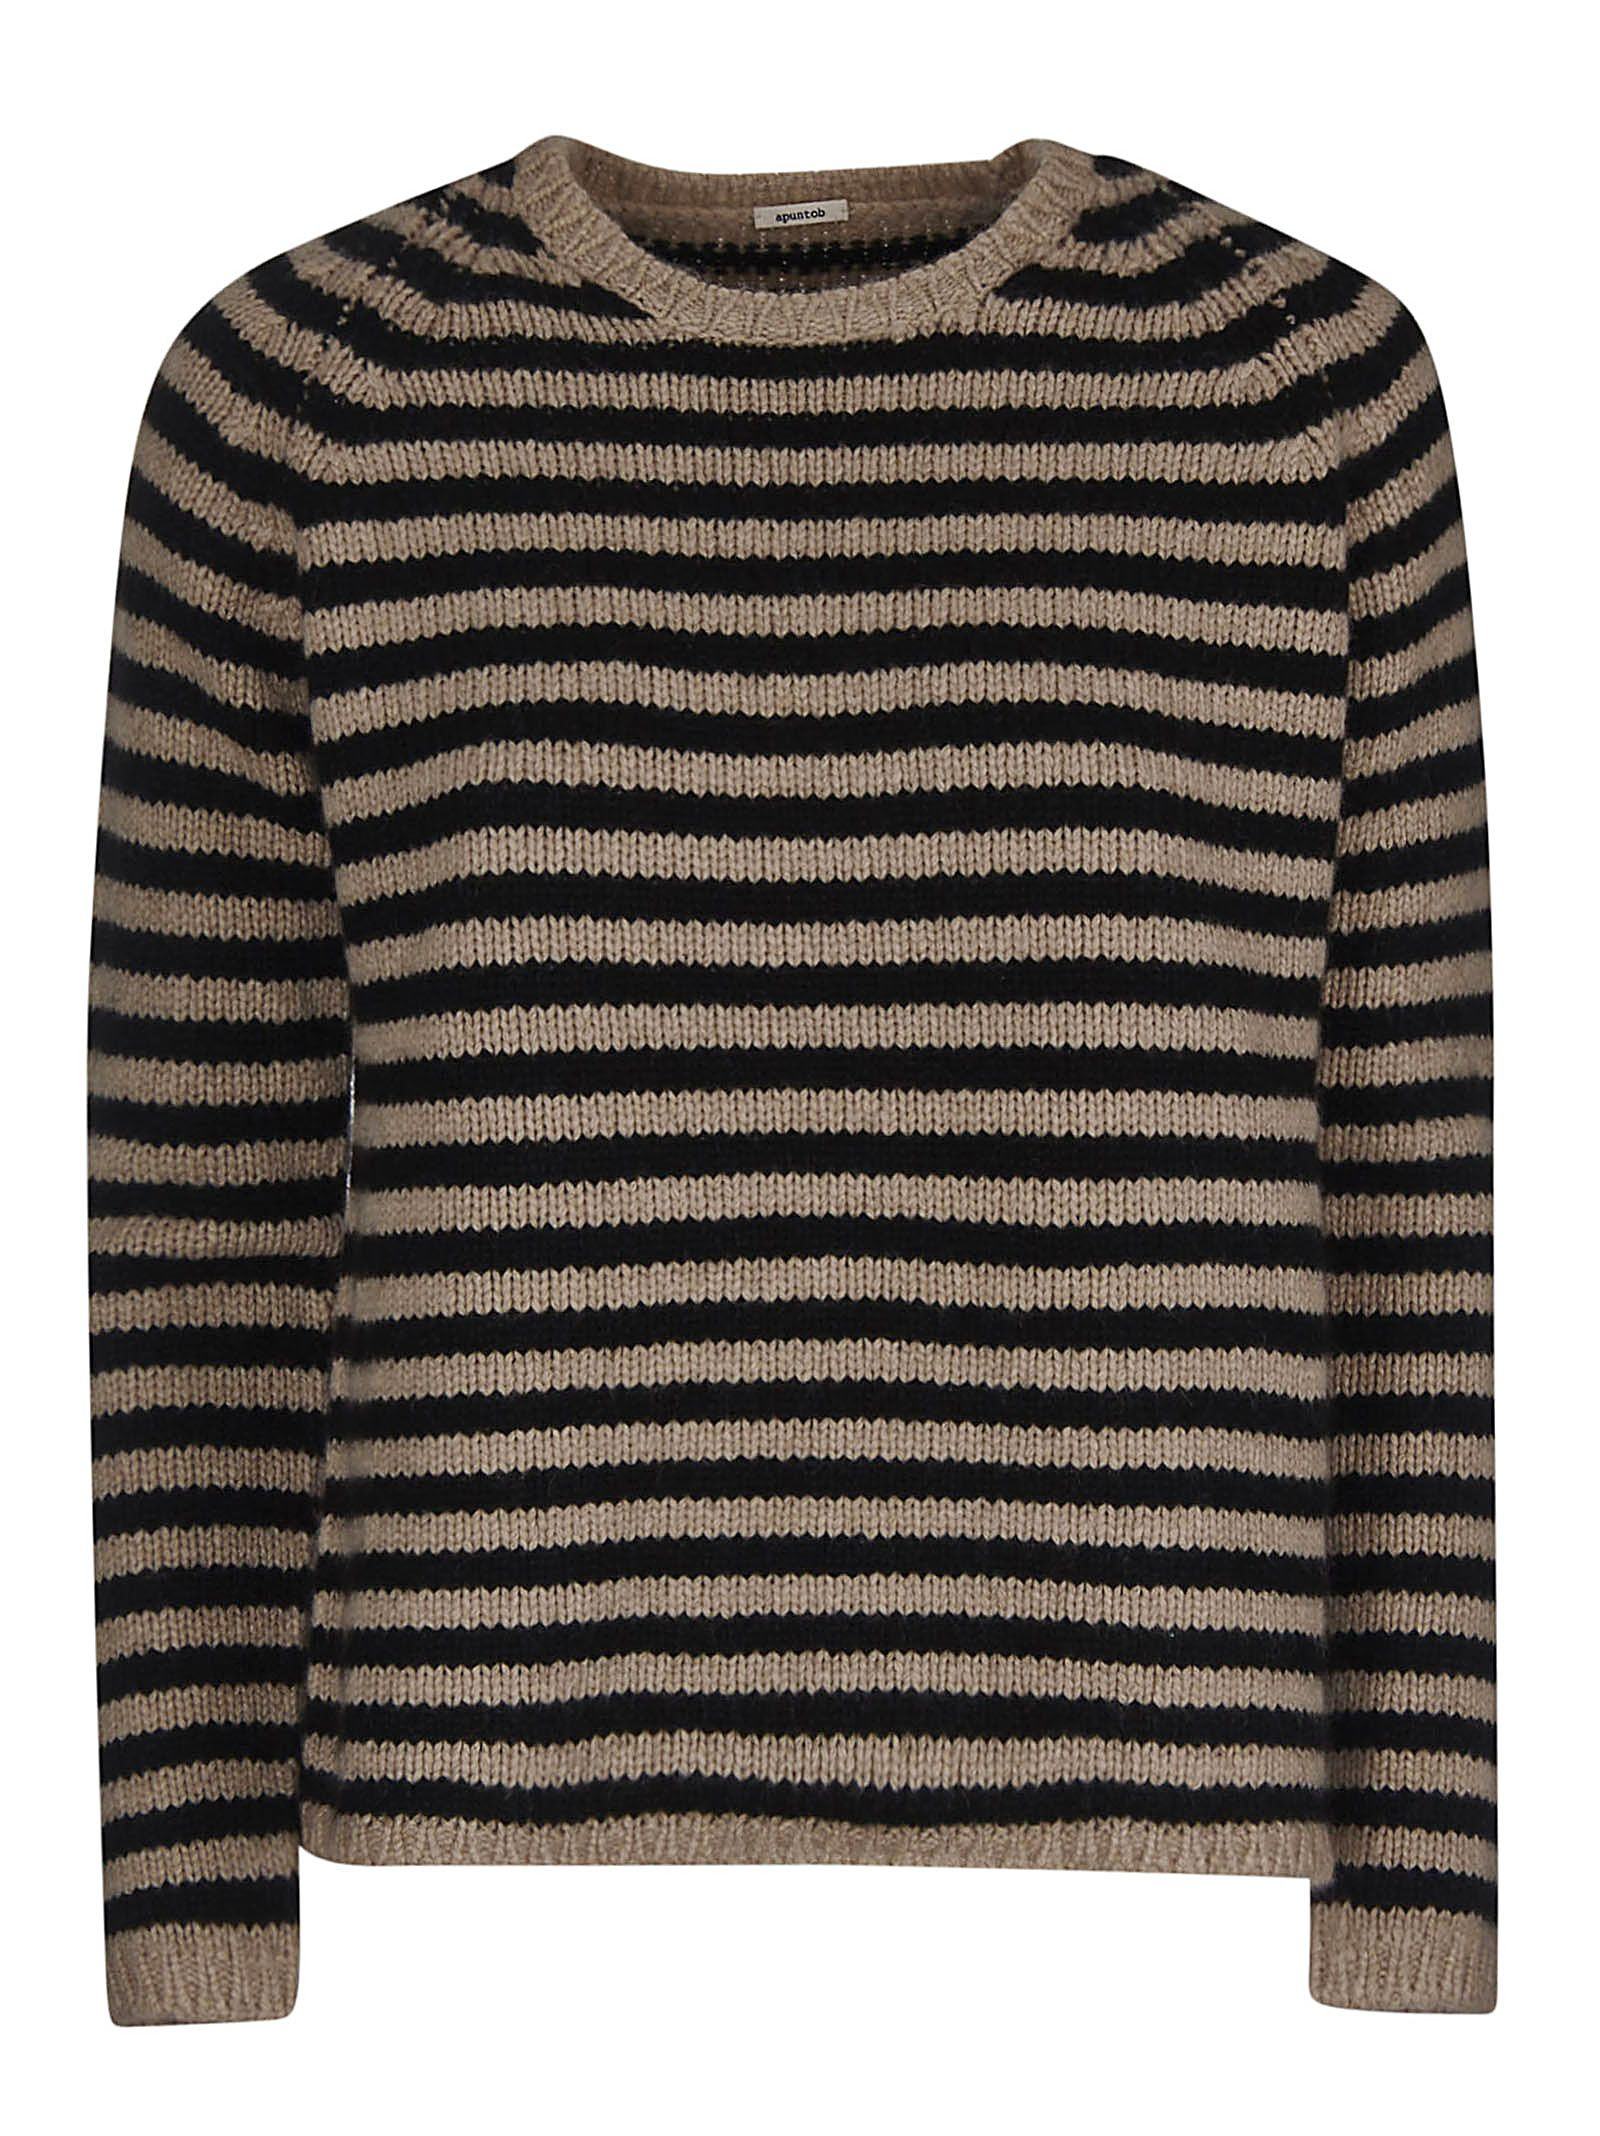 A PUNTO B A.B Stripe Knitted Sweater in Natural/Black